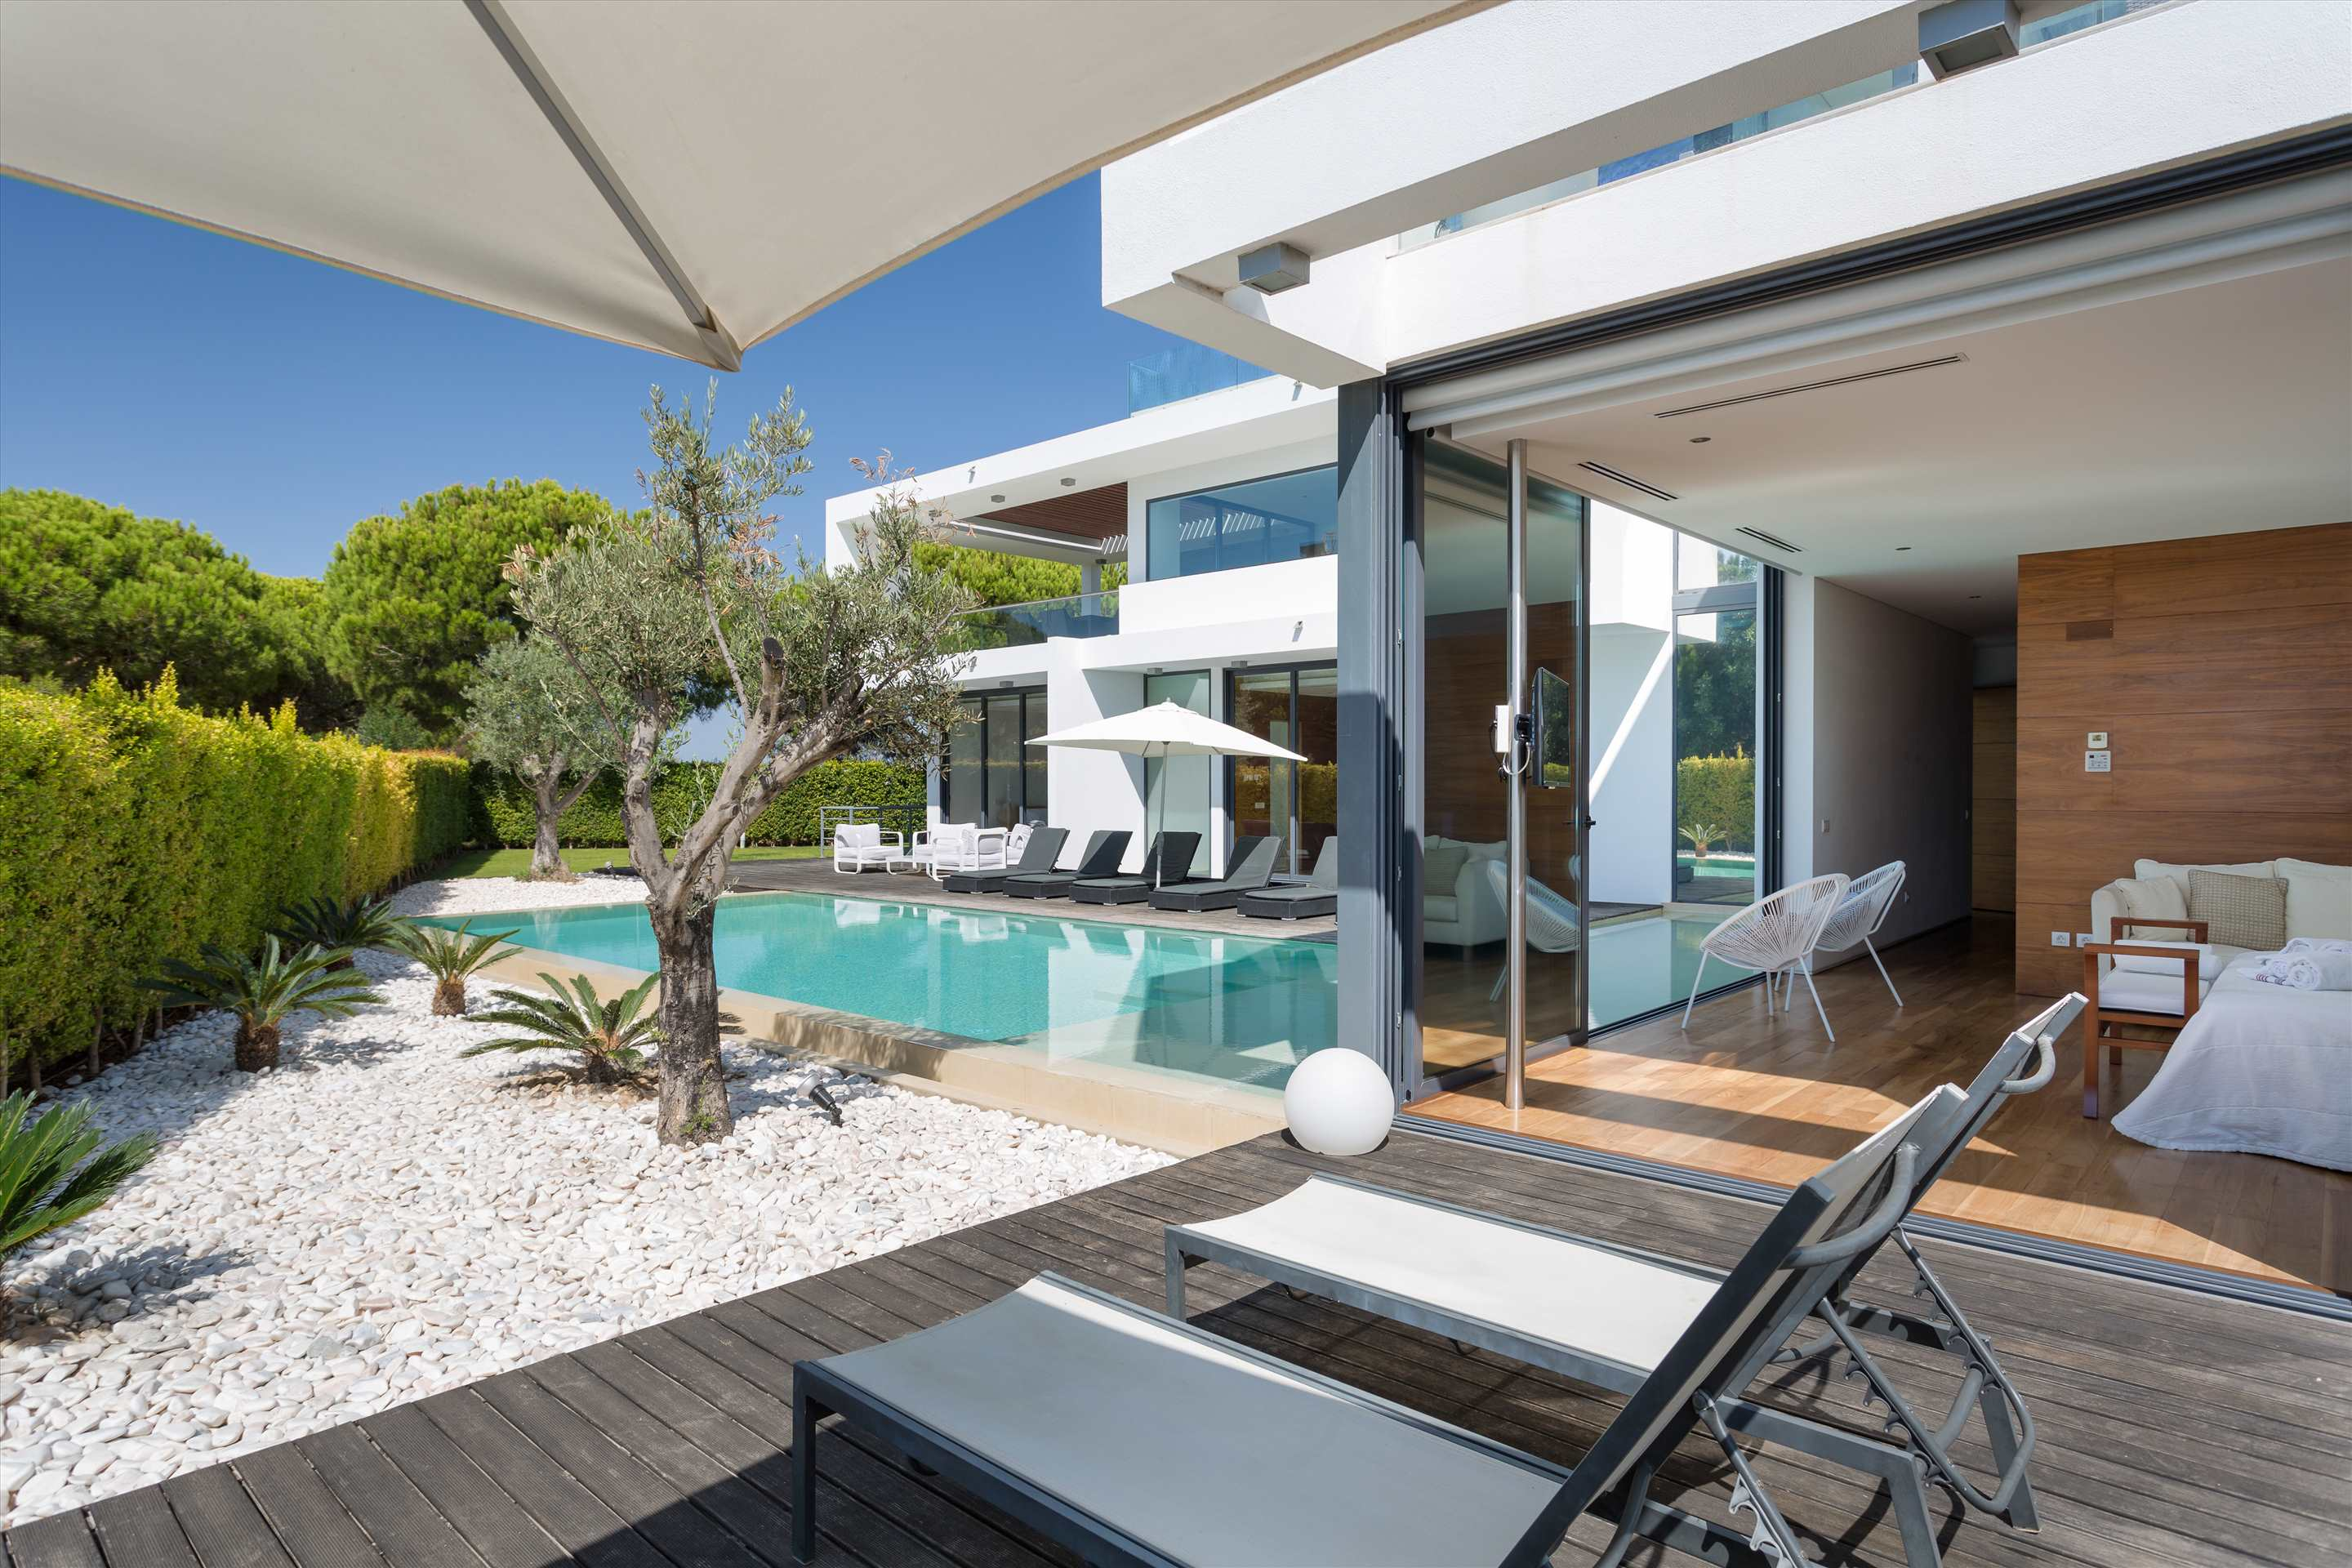 Villa Gemini, 4 bedroom villa in Vale do Lobo, Algarve Photo #7